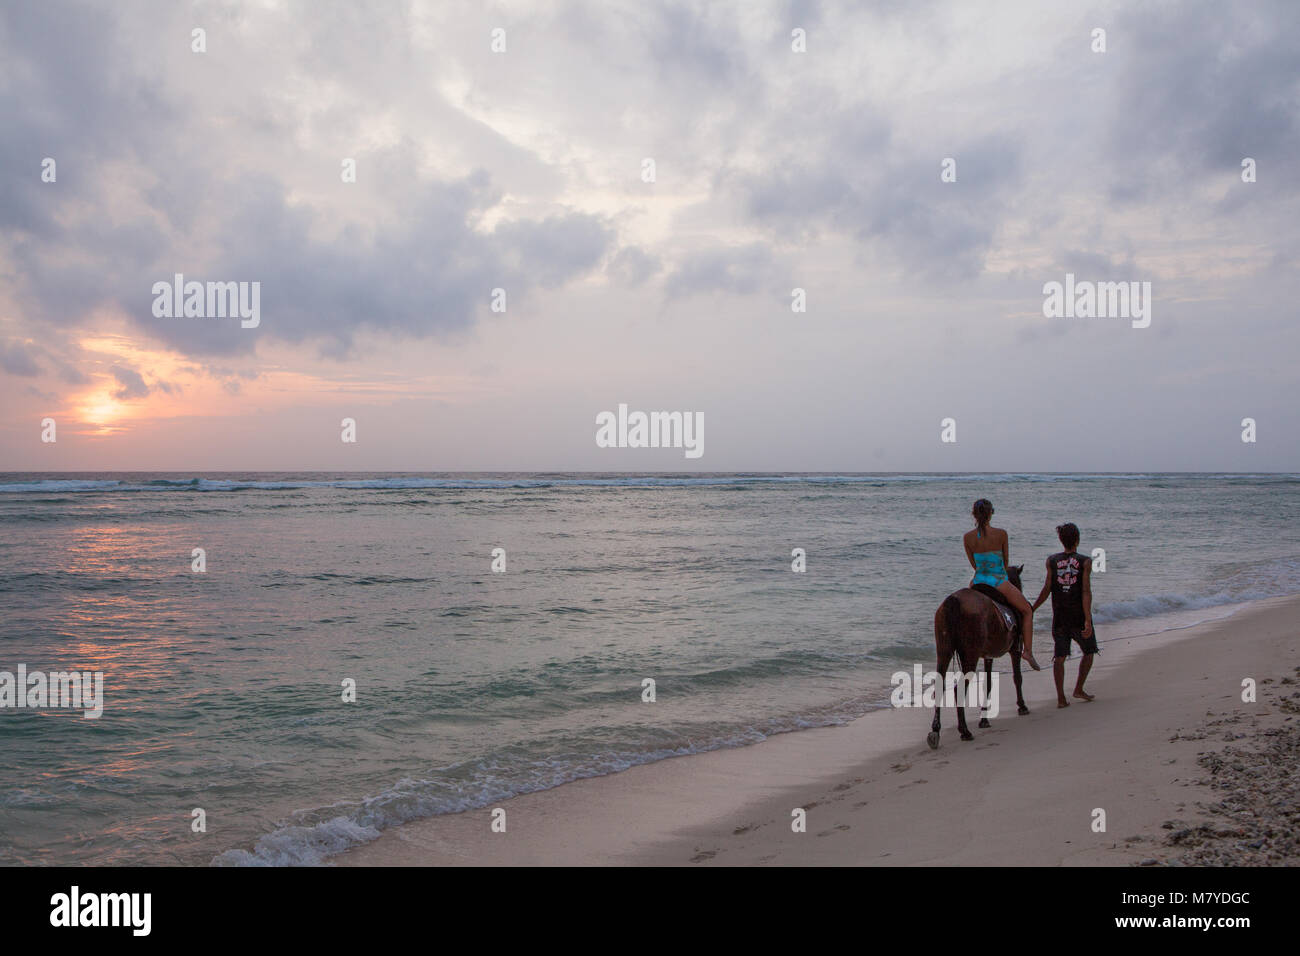 Girl horse riding on a deserted beach in Gili Trawangan, Indonesia, accompanied by a local guide walking on her - Stock Image